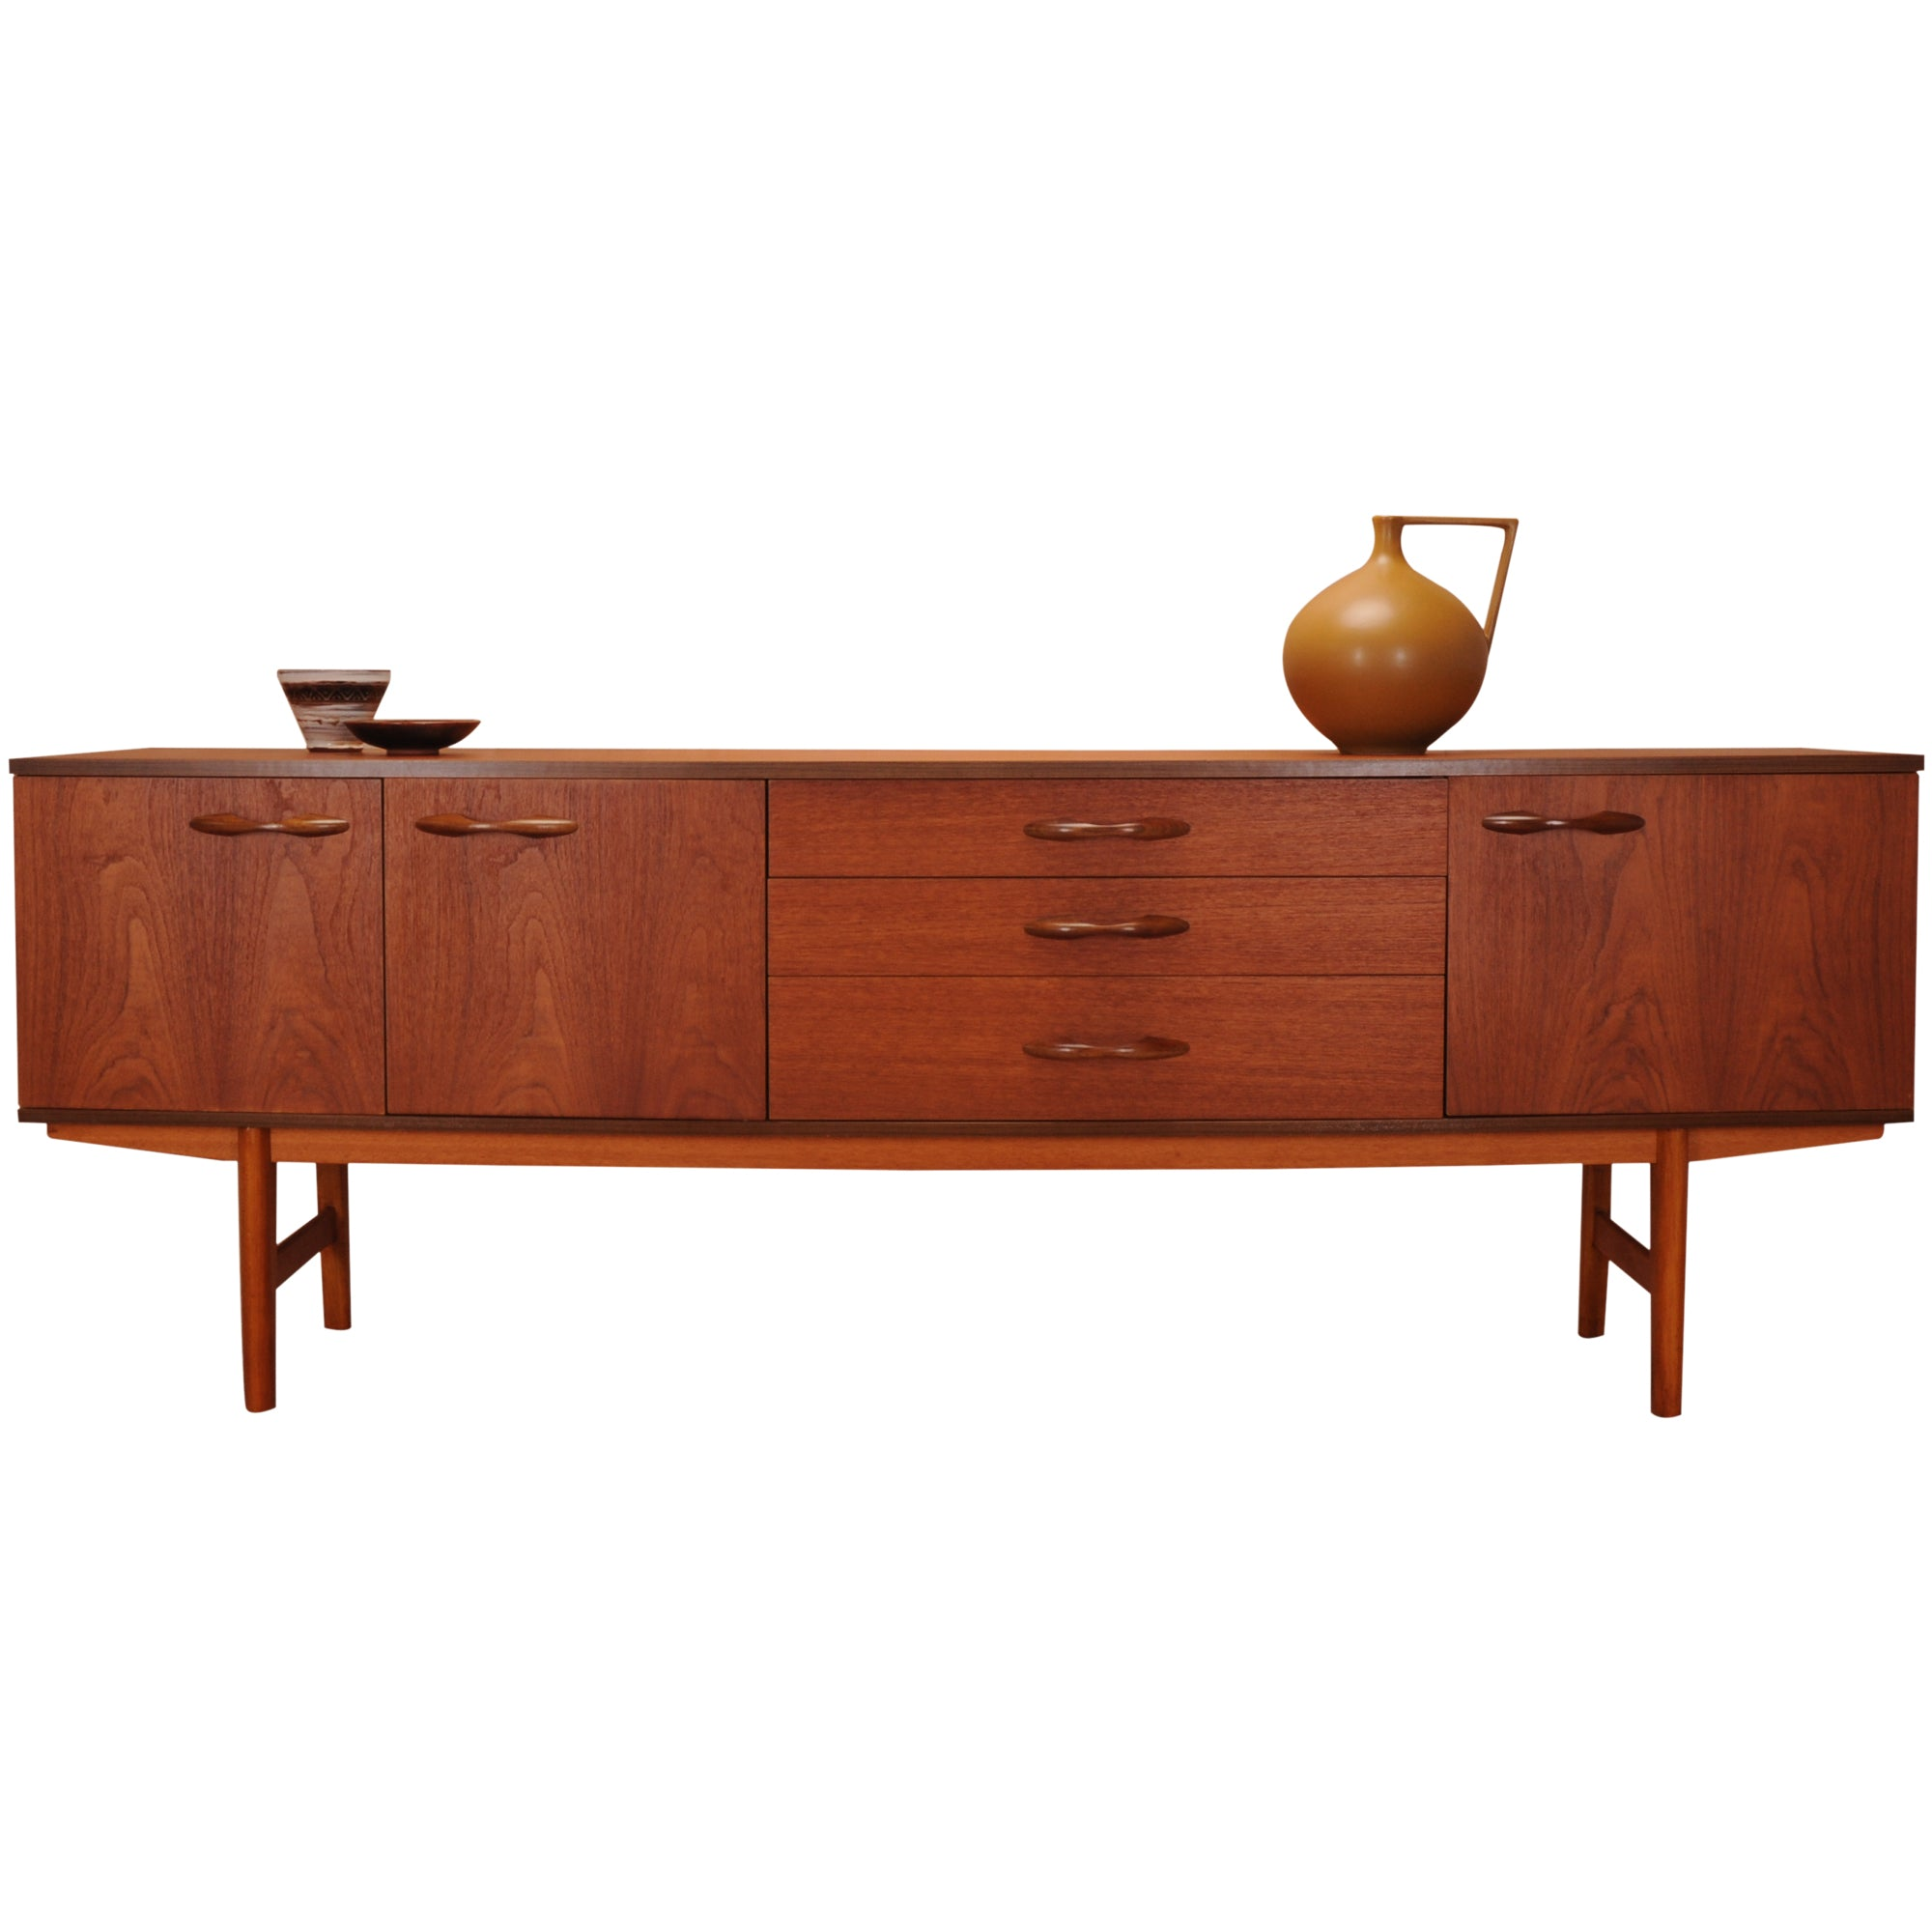 1960s Teak Avalon Long John Sideboard